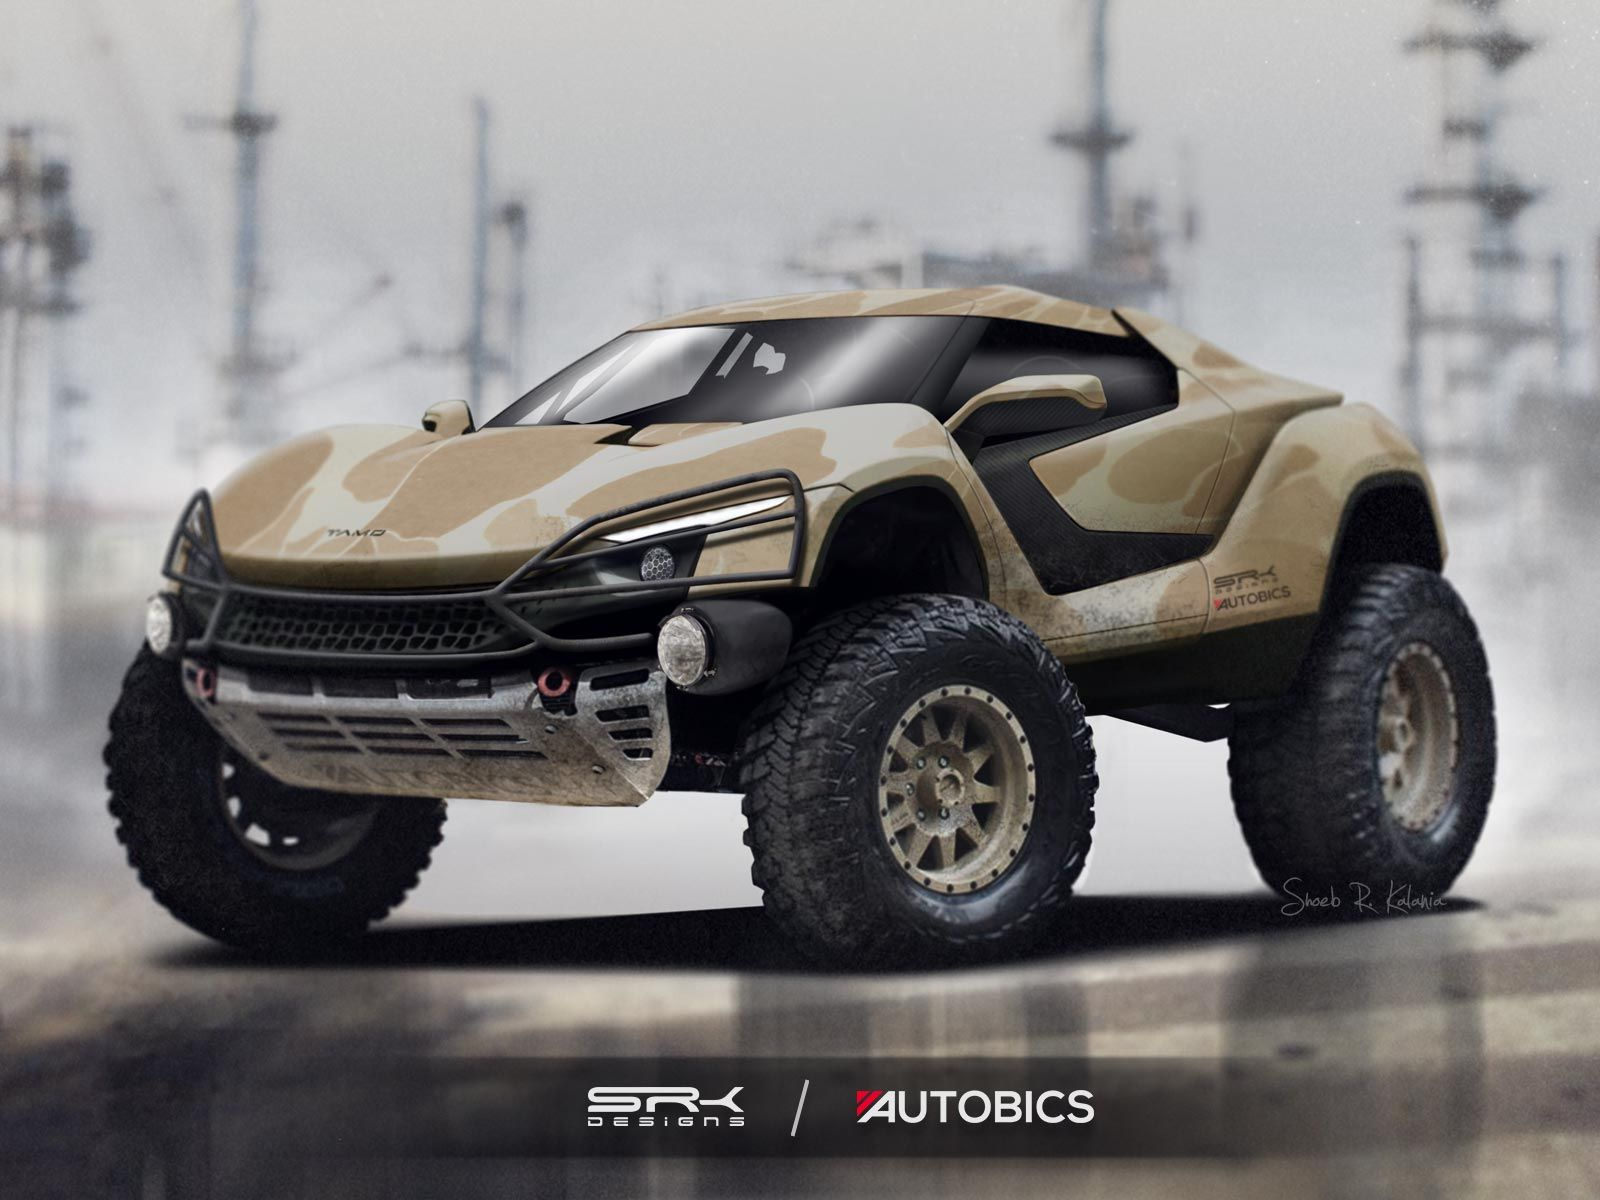 Tamo Racemo By Tata Motors Imagined As An Off Road Machine It Is A Two Seater Sports Coupe That Was Unveiled At The 87th Gene Super Cars Tata Motors City Car